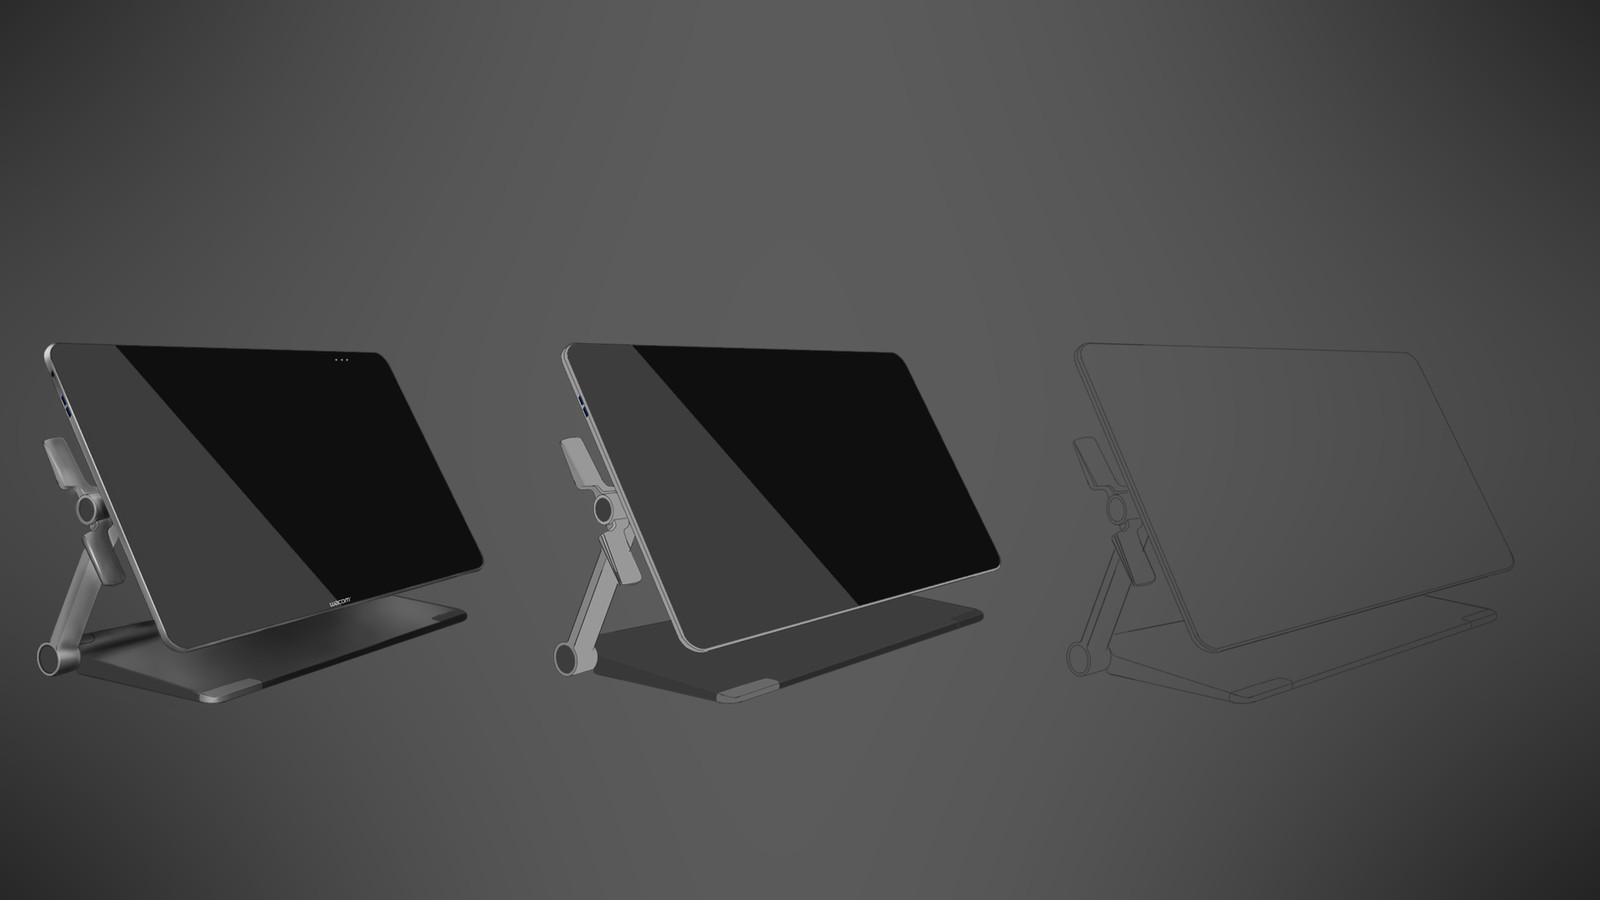 Illustration of Wacom Cintiq 27.